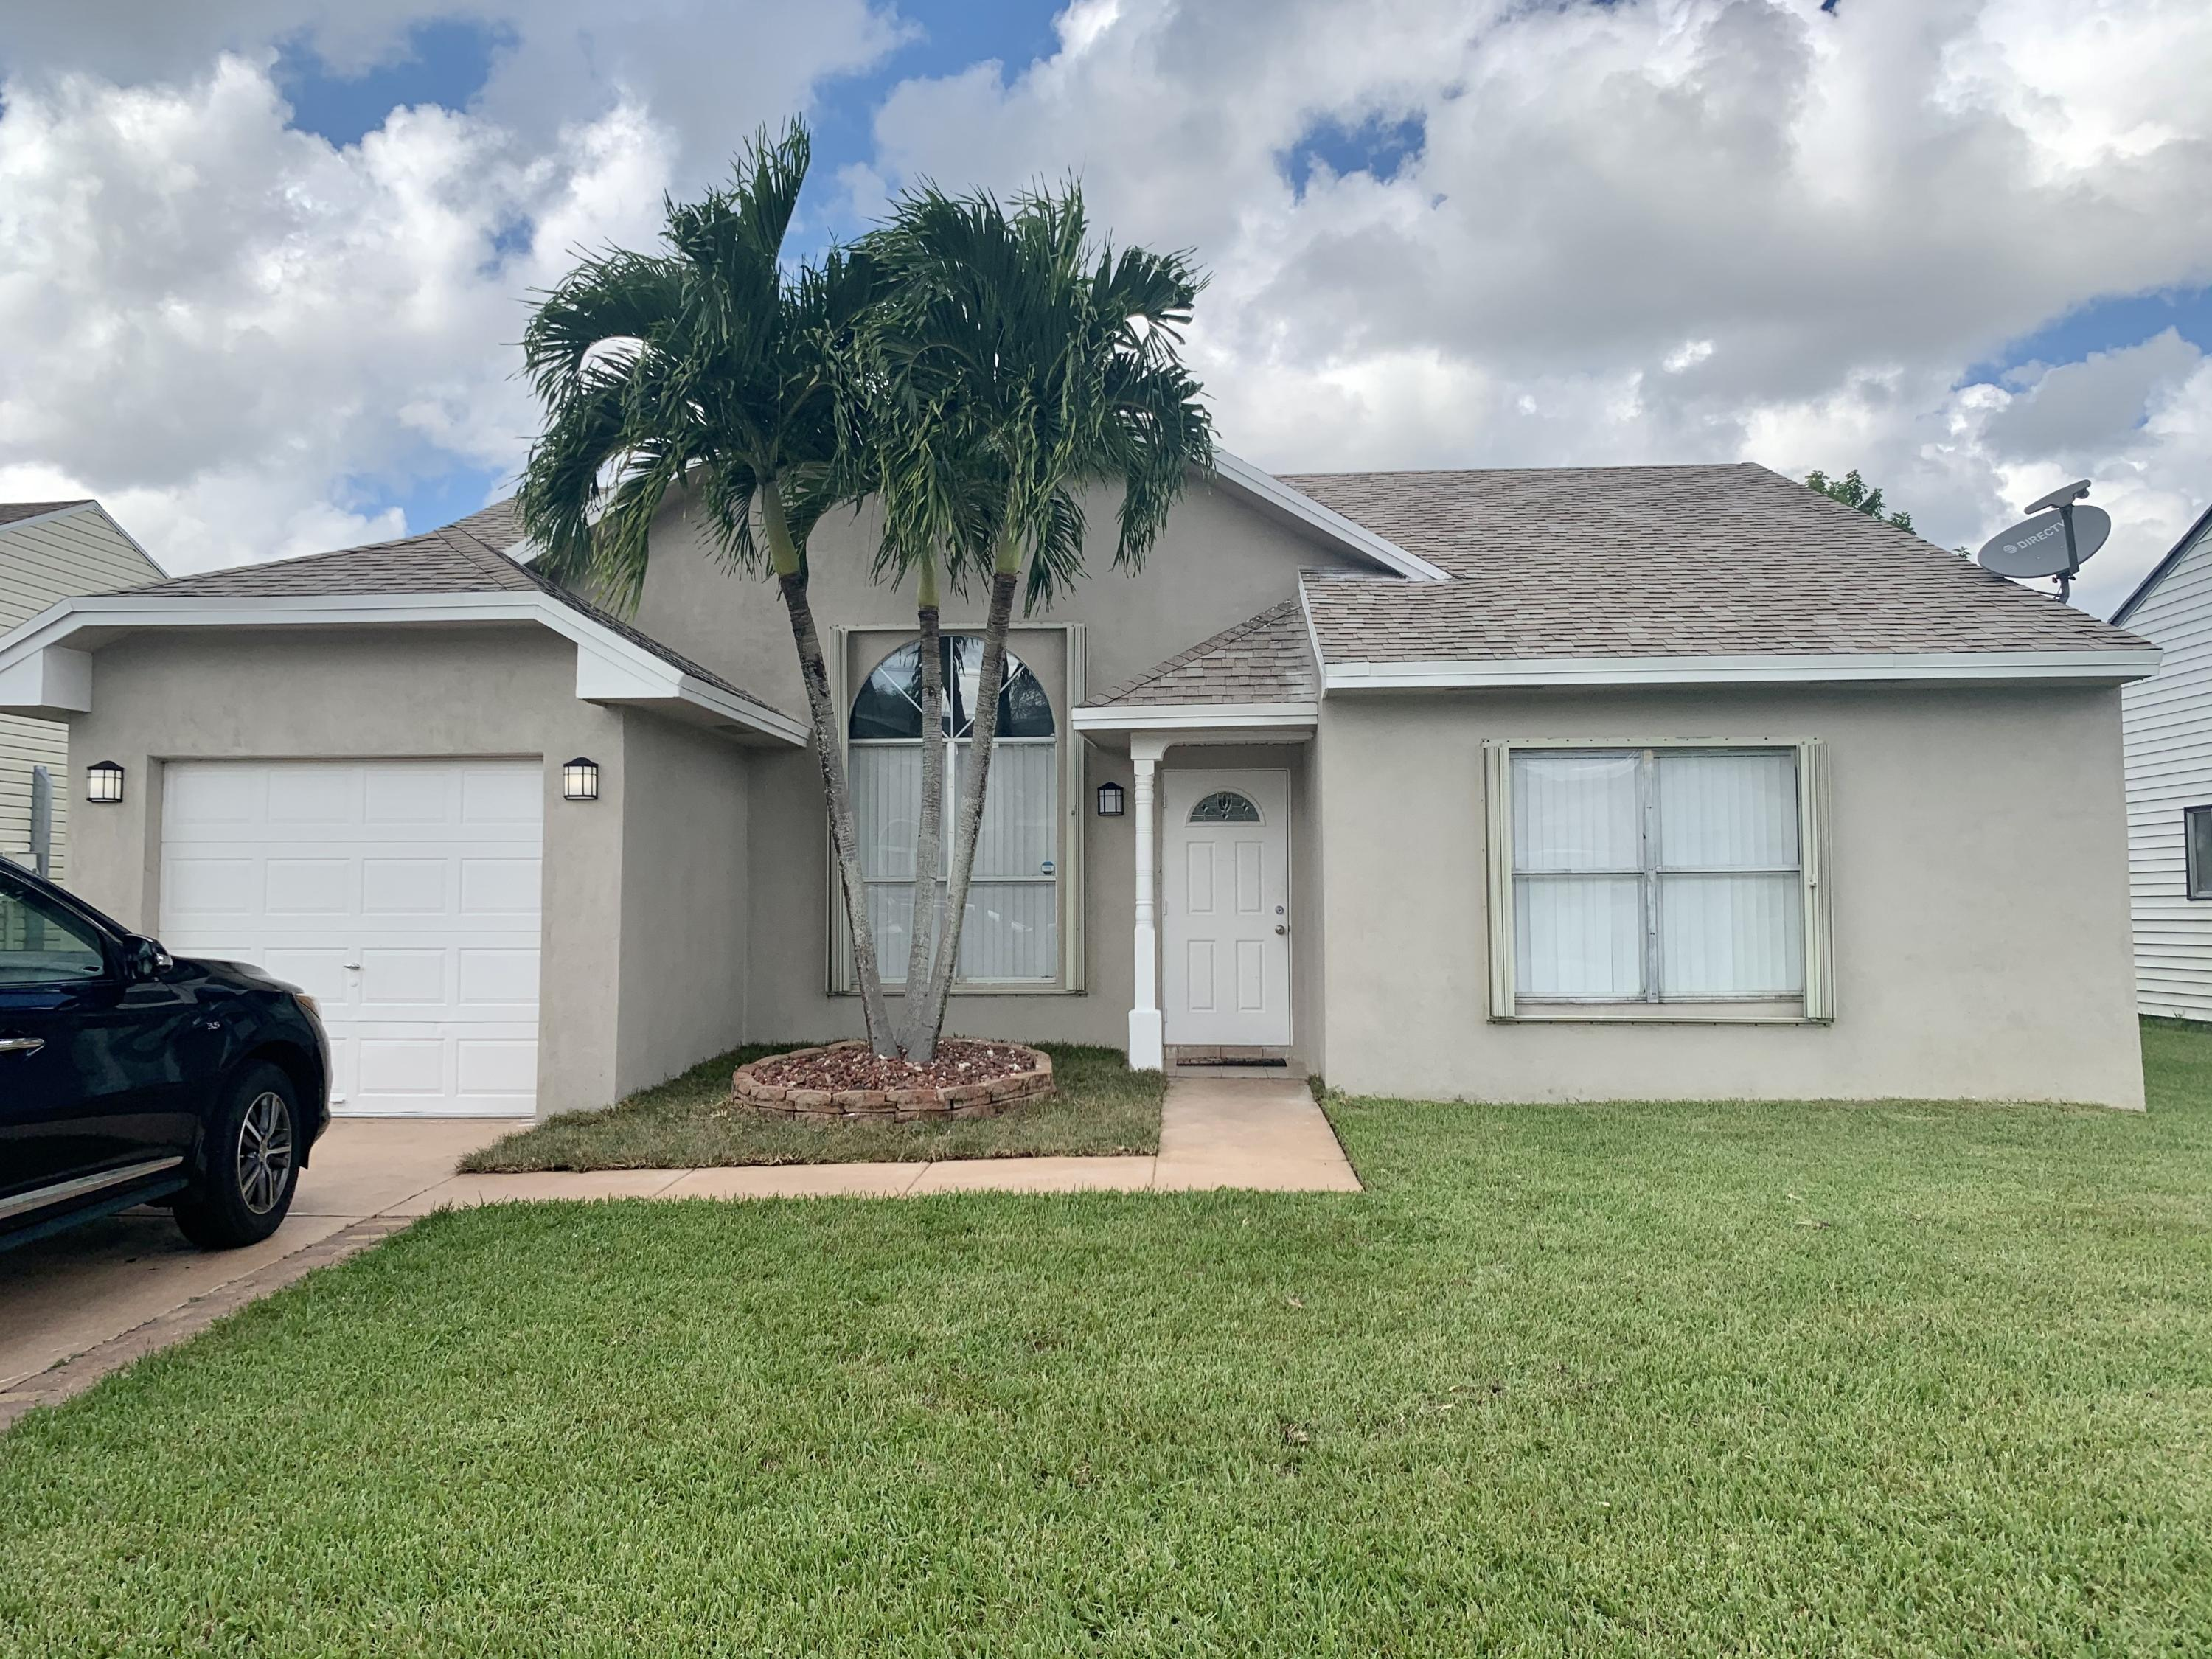 Home for sale in Country Park Boca Raton Florida